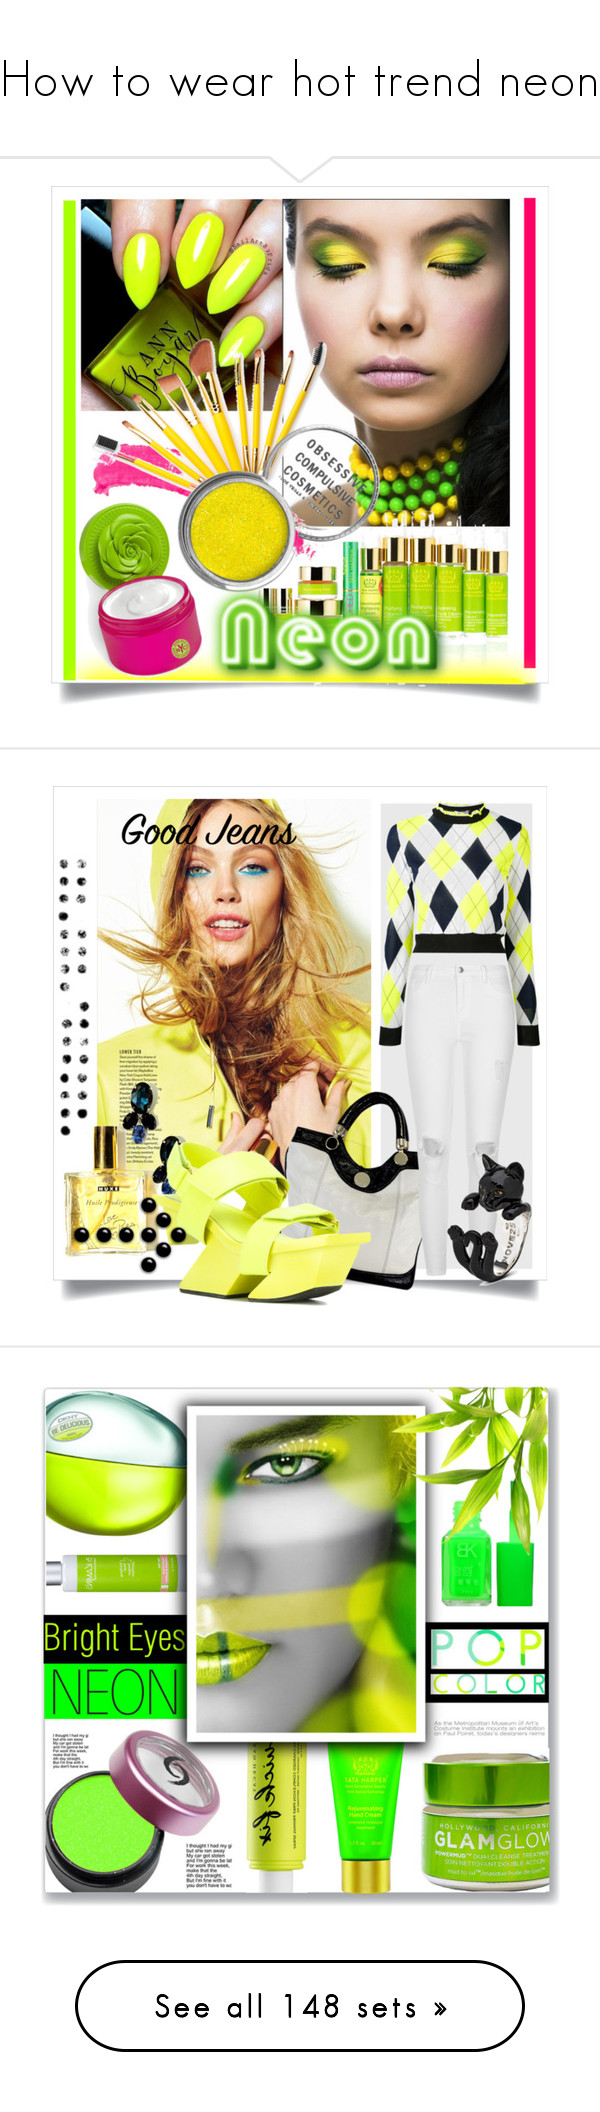 """How to wear hot trend neon"" by yours-styling-best-friend ❤ liked on Polyvore featuring neon, beauty, Topshop, Tata Harper, Obsessive Compulsive Cosmetics, Bond No. 9, neonbeauty, Jill Stuart, River Island and PAM"